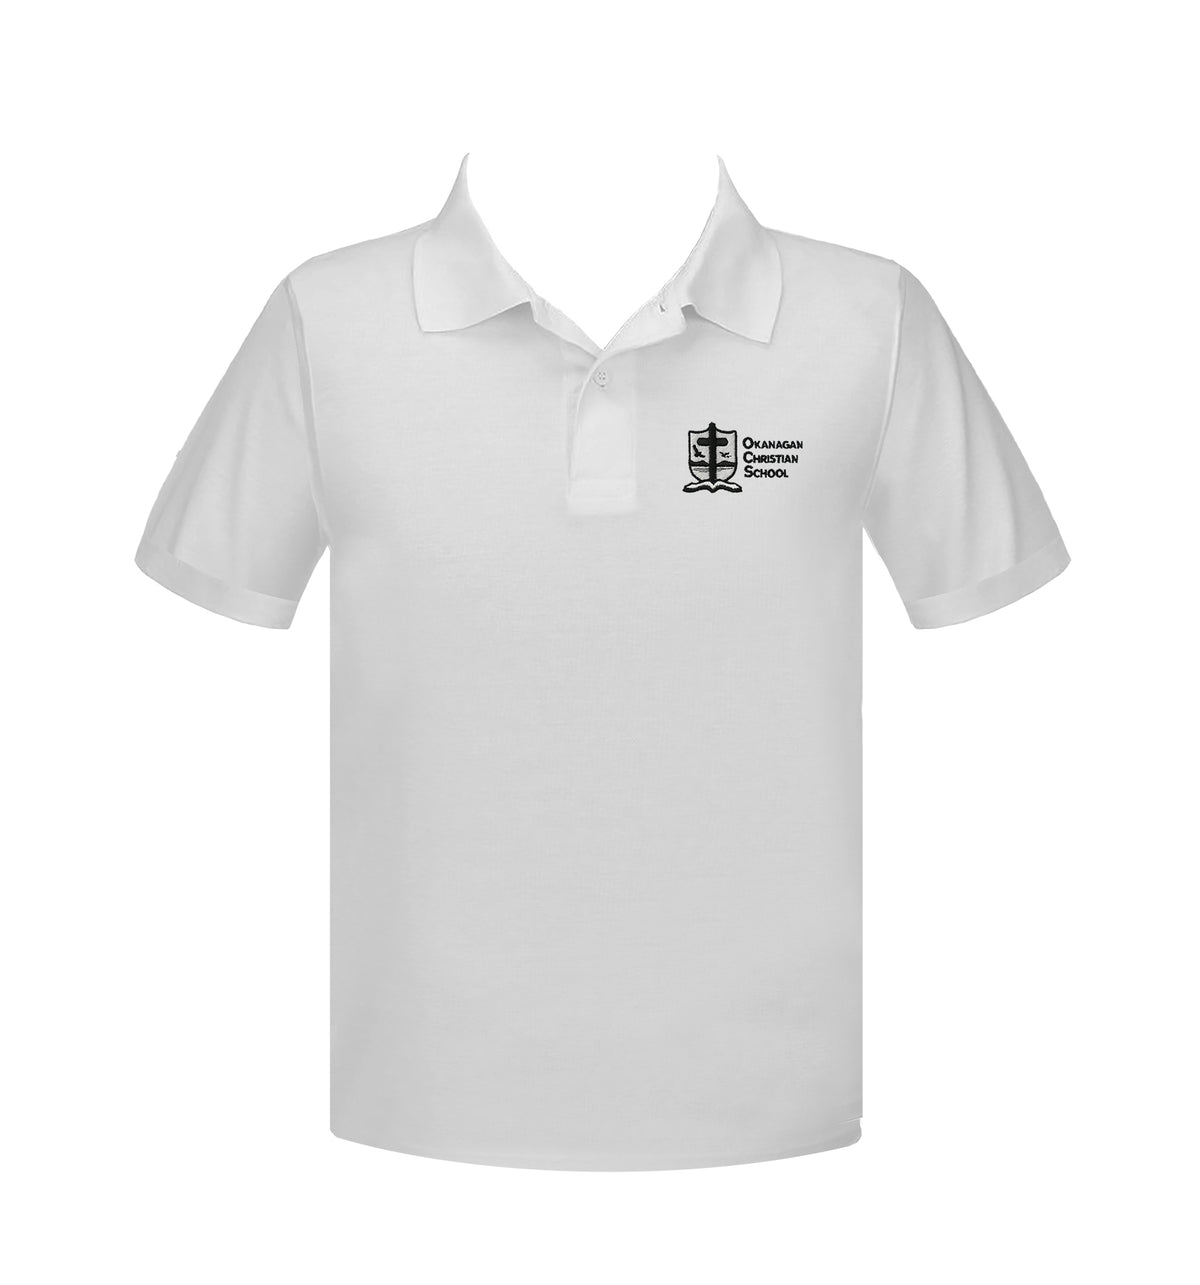 OKANAGAN CHRISTIAN WHITE GOLF SHIRT, UNISEX, SHORT SLEEVE, YOUTH